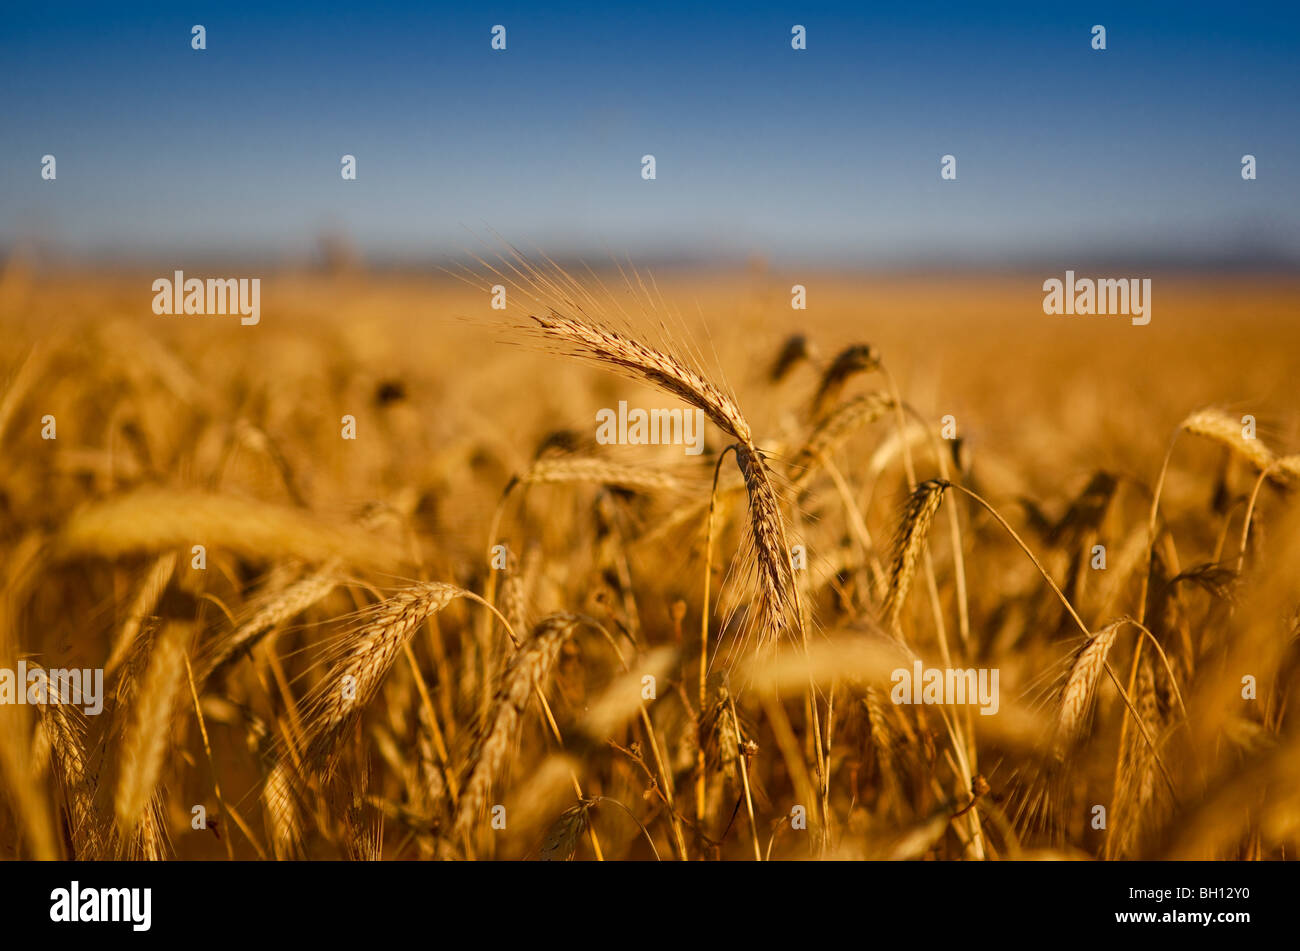 Beautiful landscape image of a wheat field - Stock Image